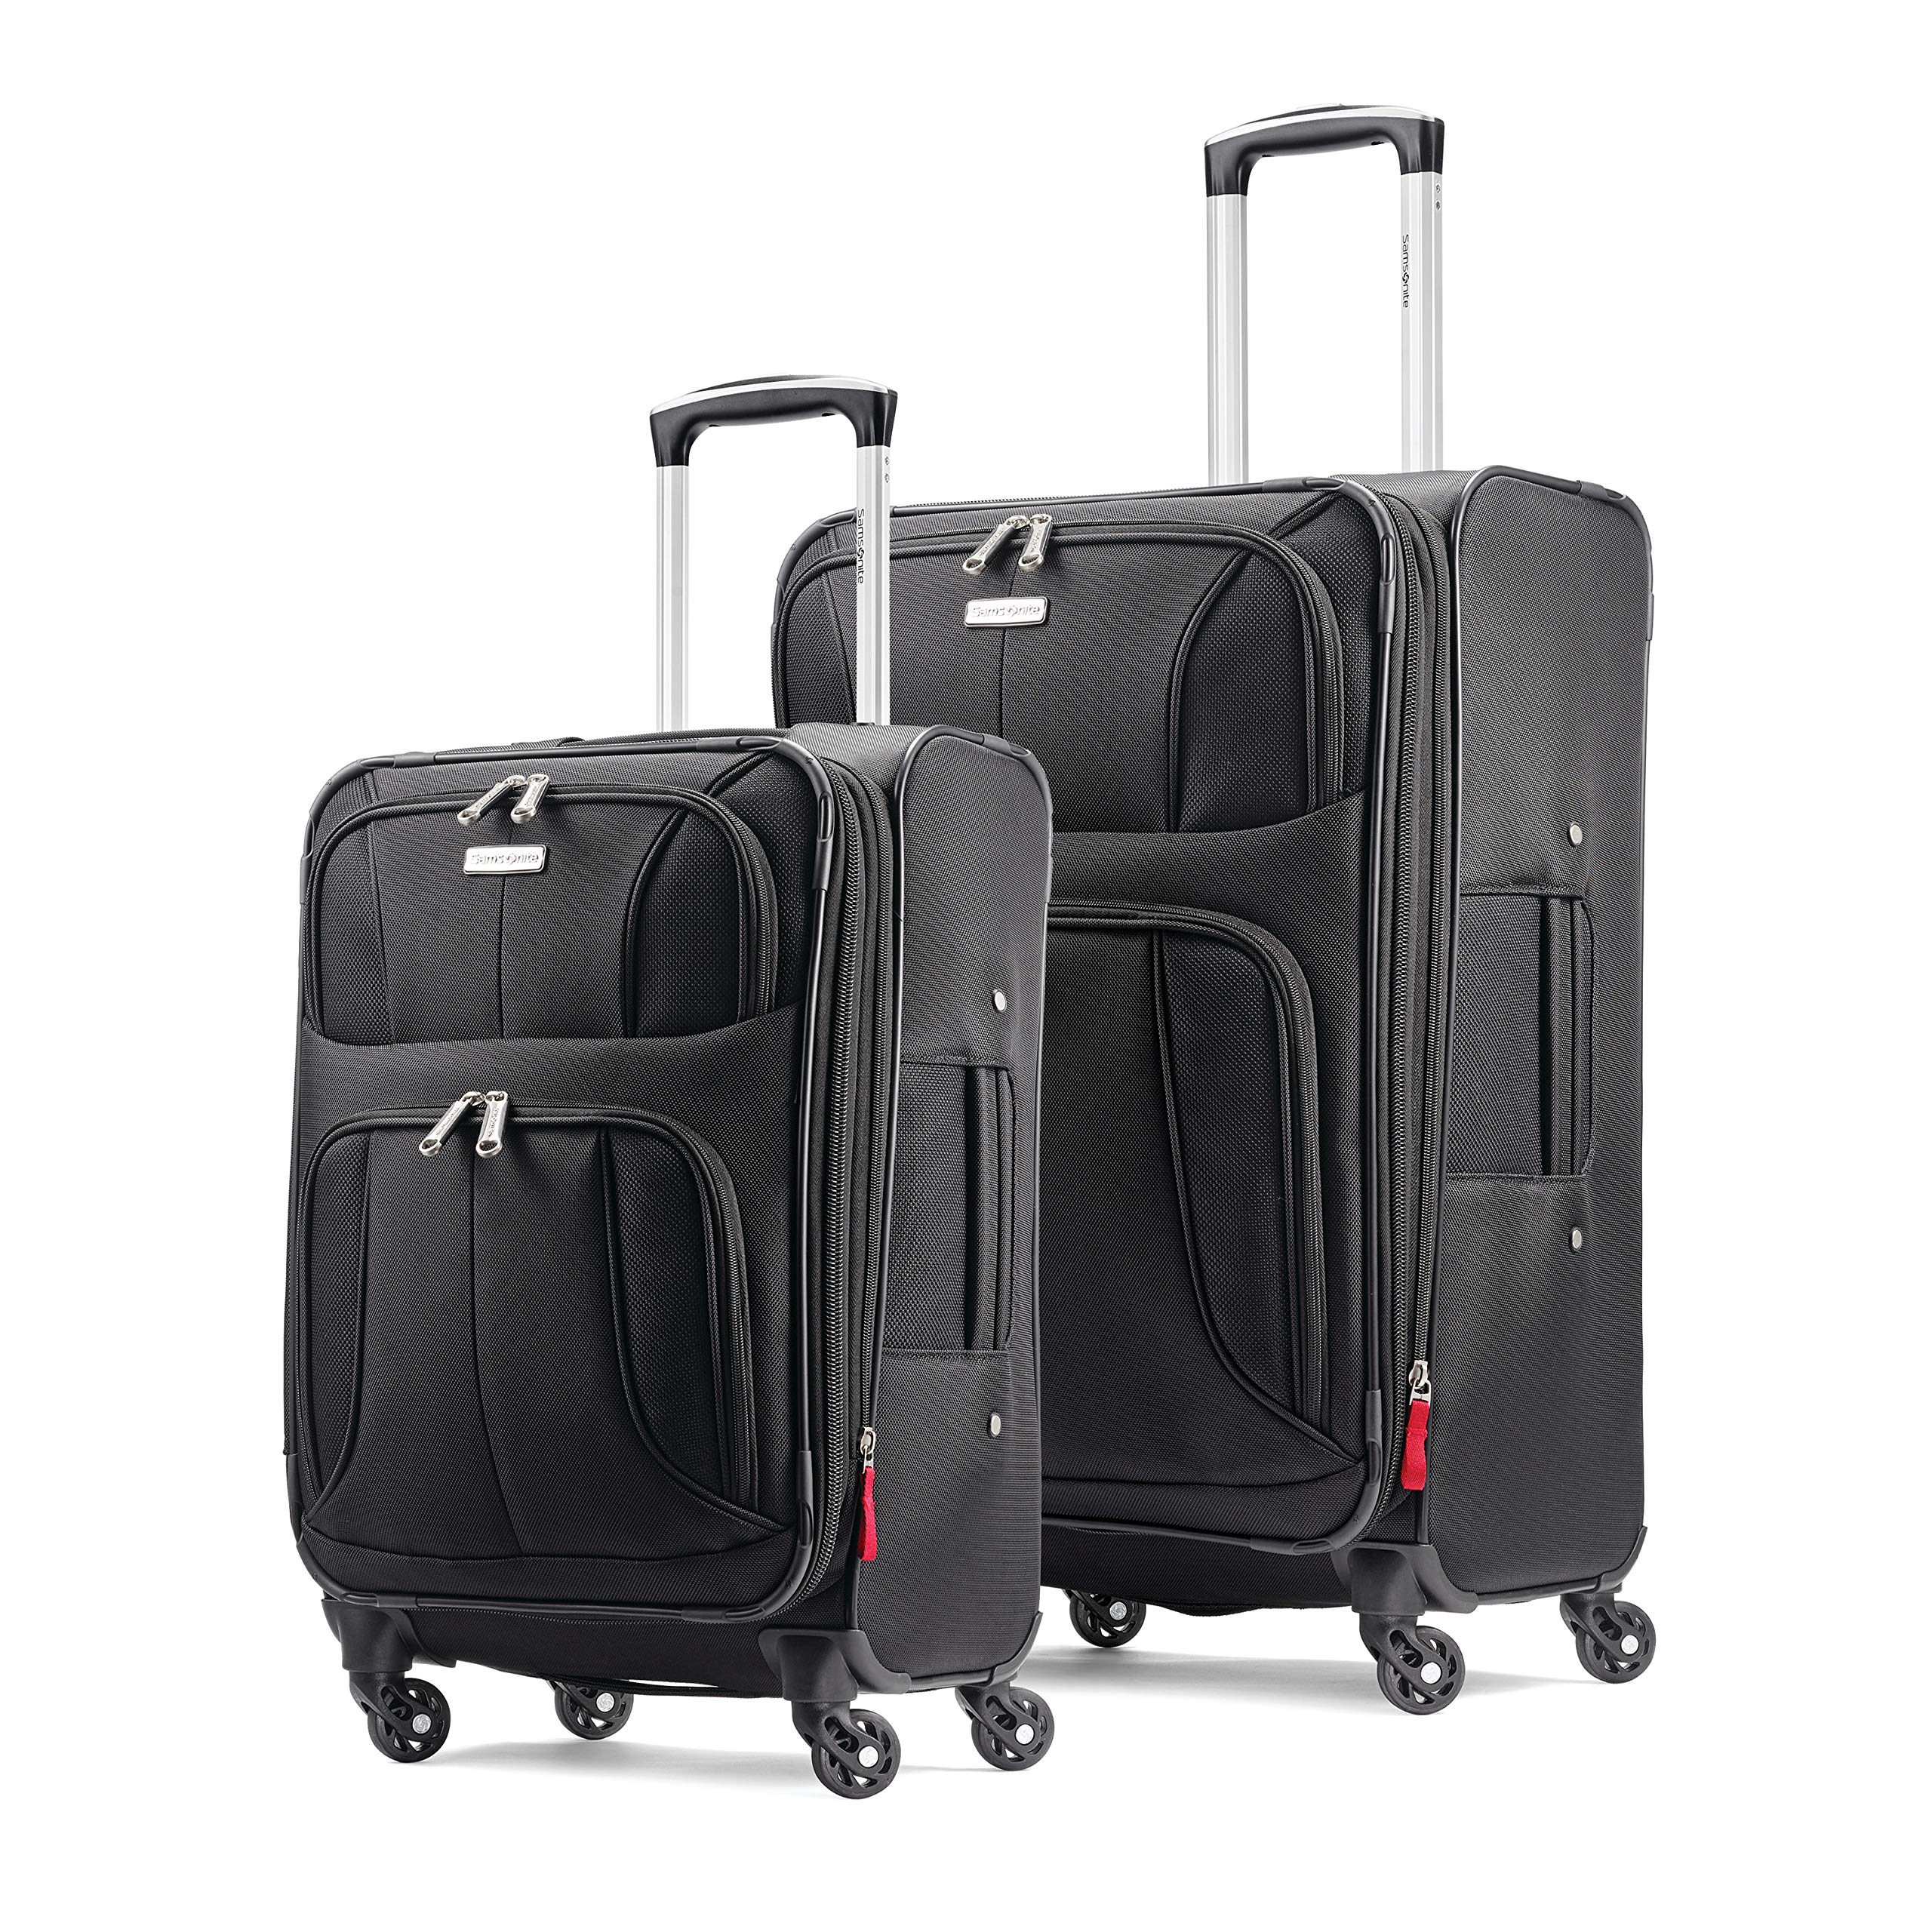 Samsonite Aspire xLite Expandable Softside Set with Spinner Wheels, 2-Piece (20''/25''), Black